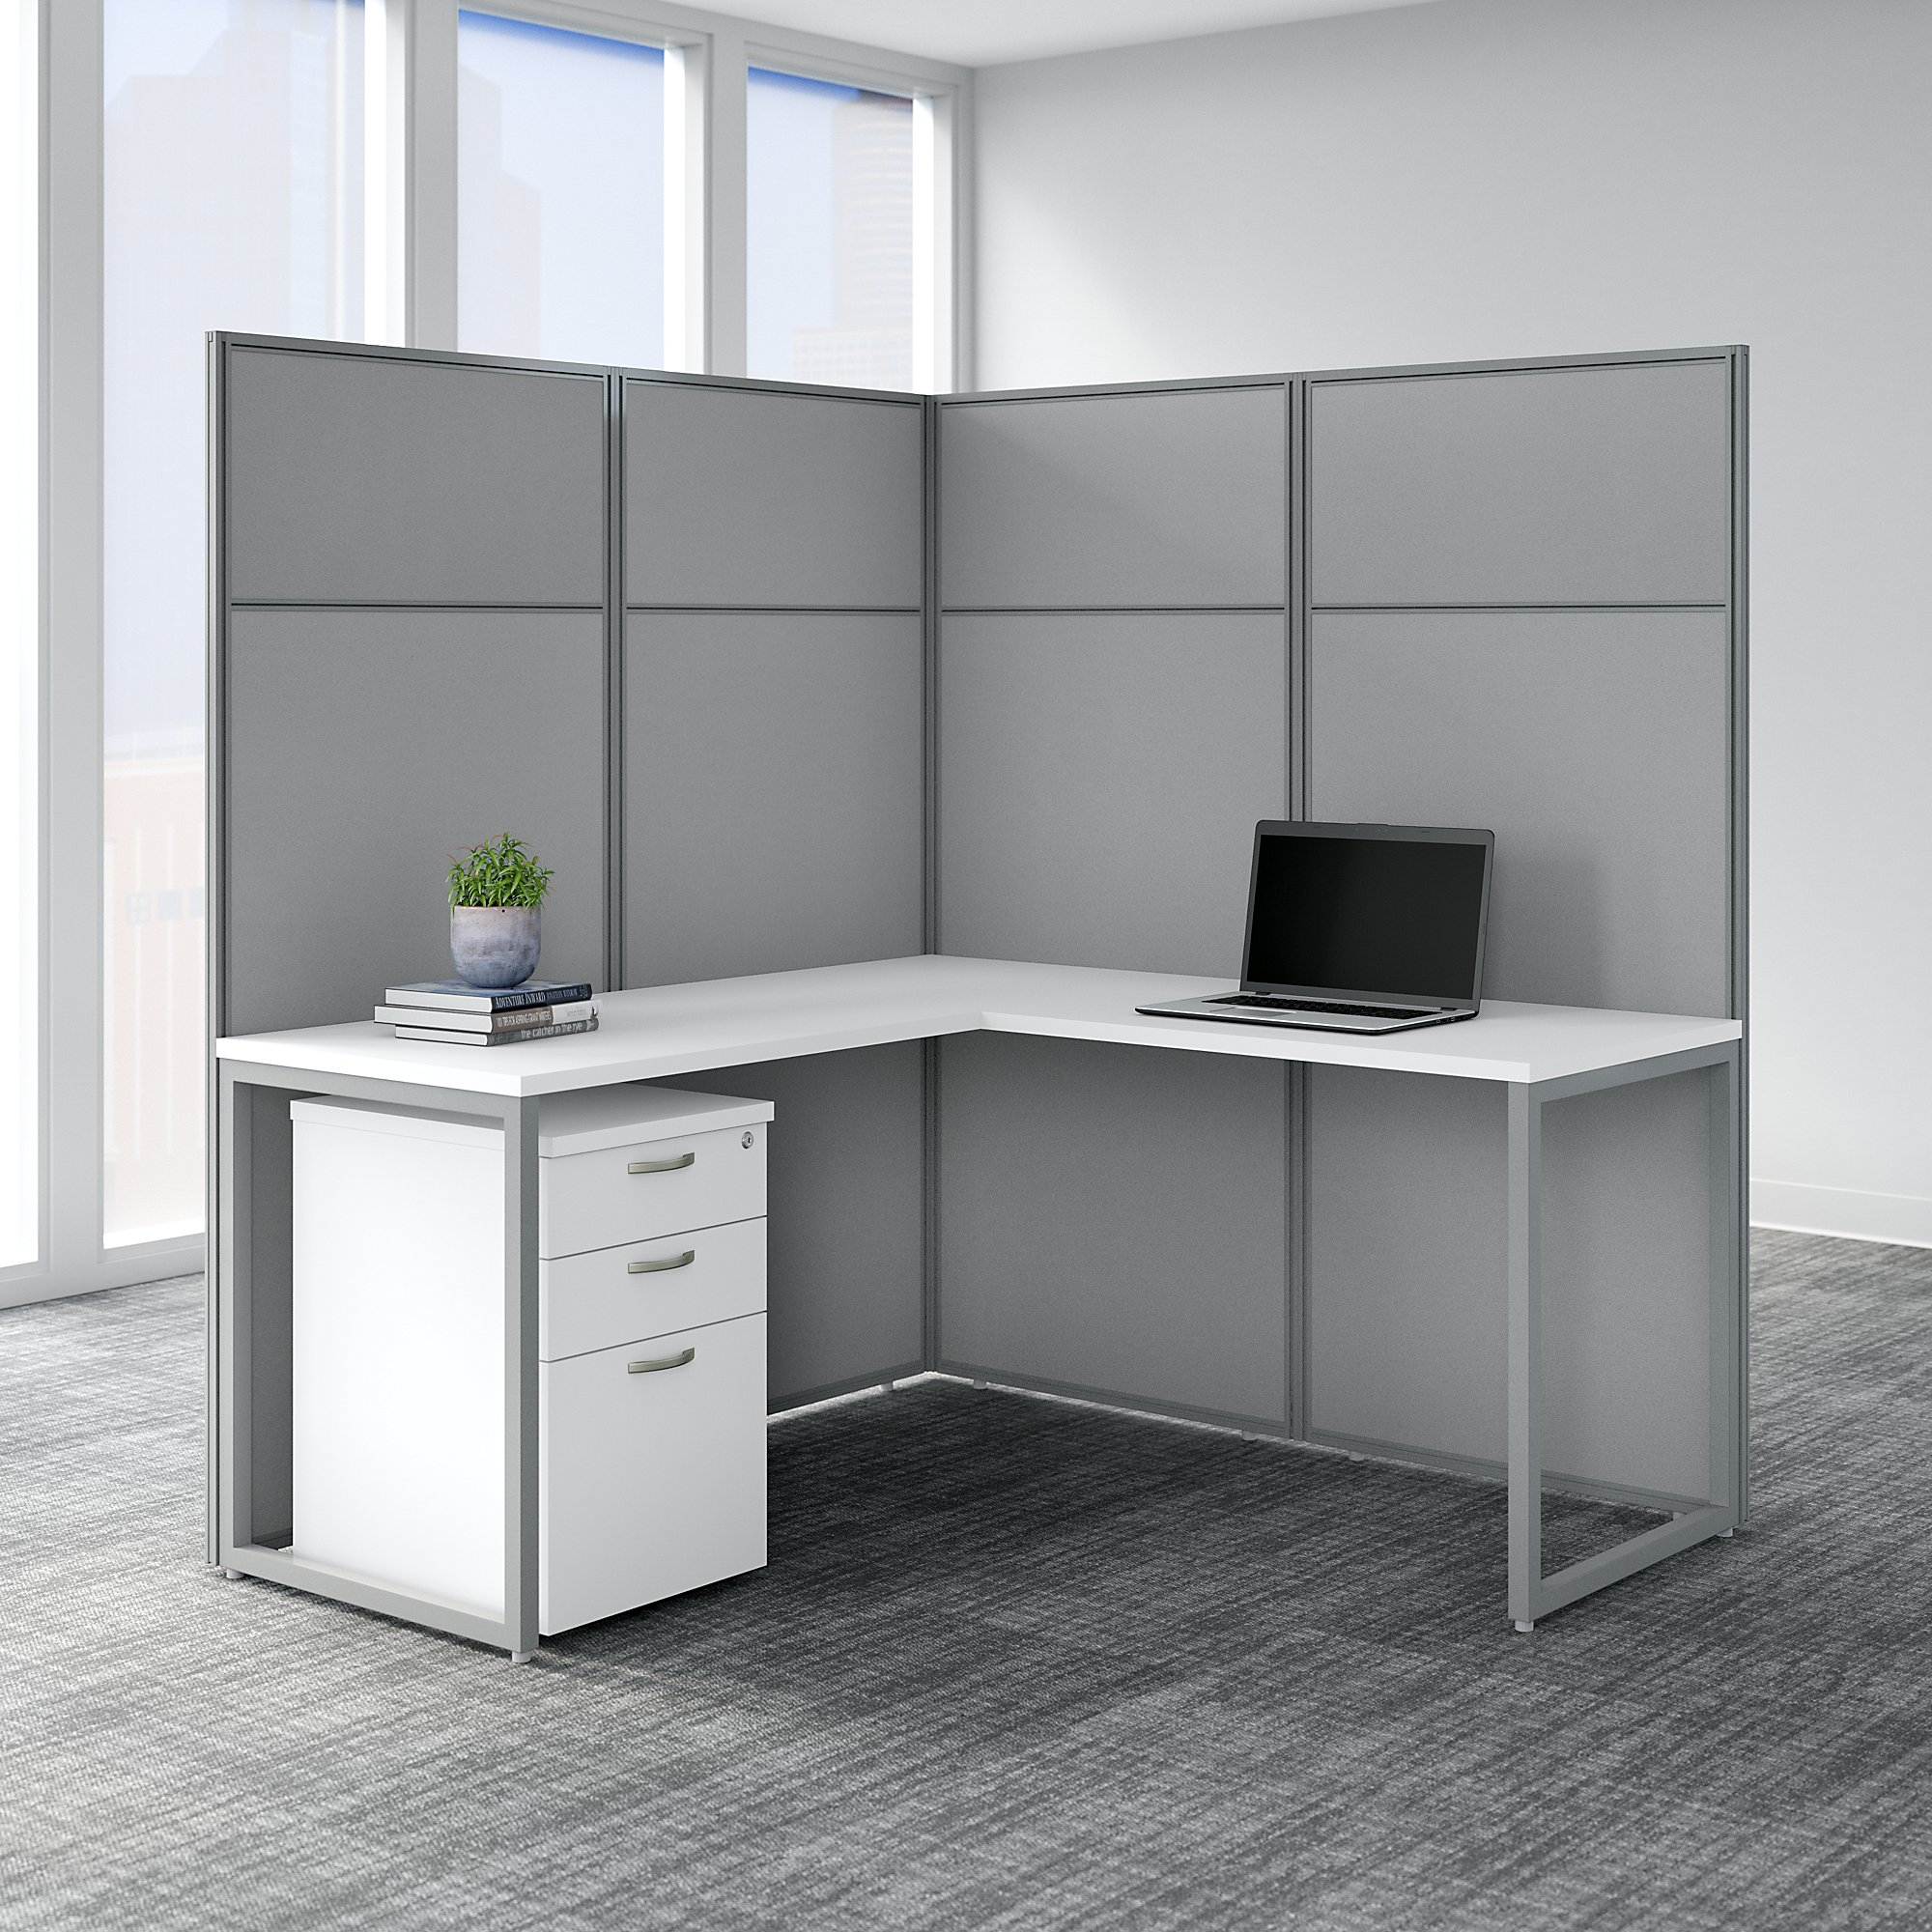 easy office l shaped privacy cubicle in pure white